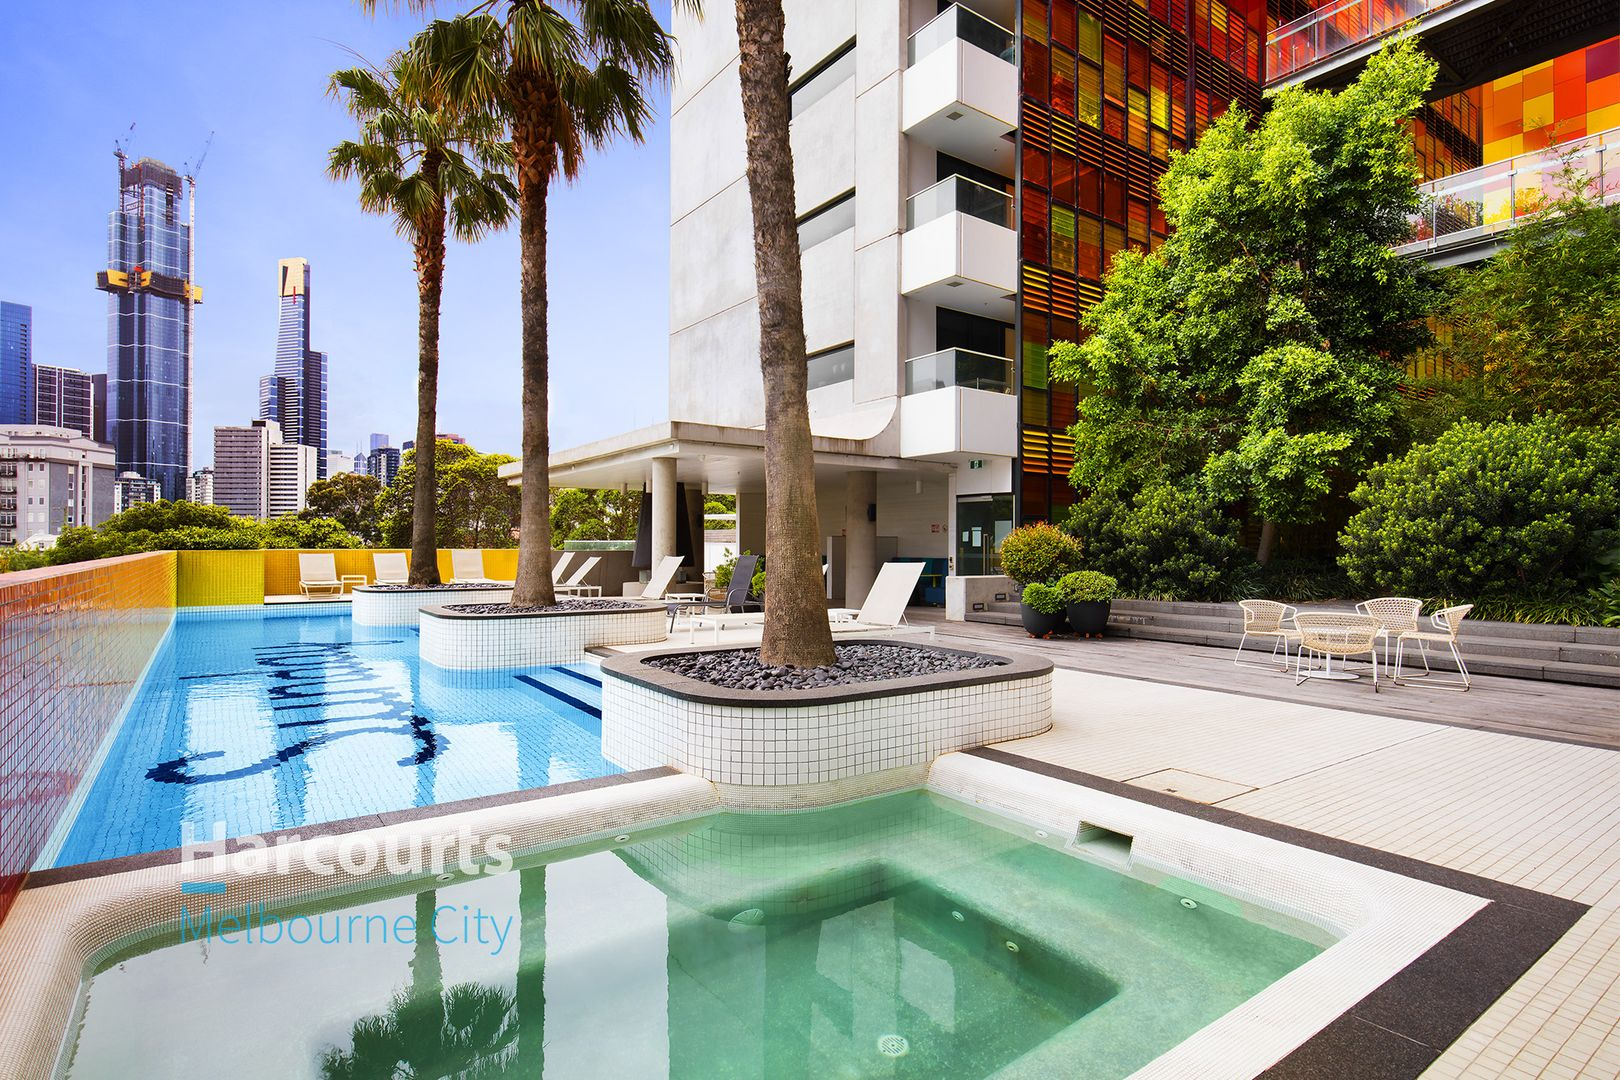 Southbank VIC 3006 - 2 beds apartment for Sale, Address ...